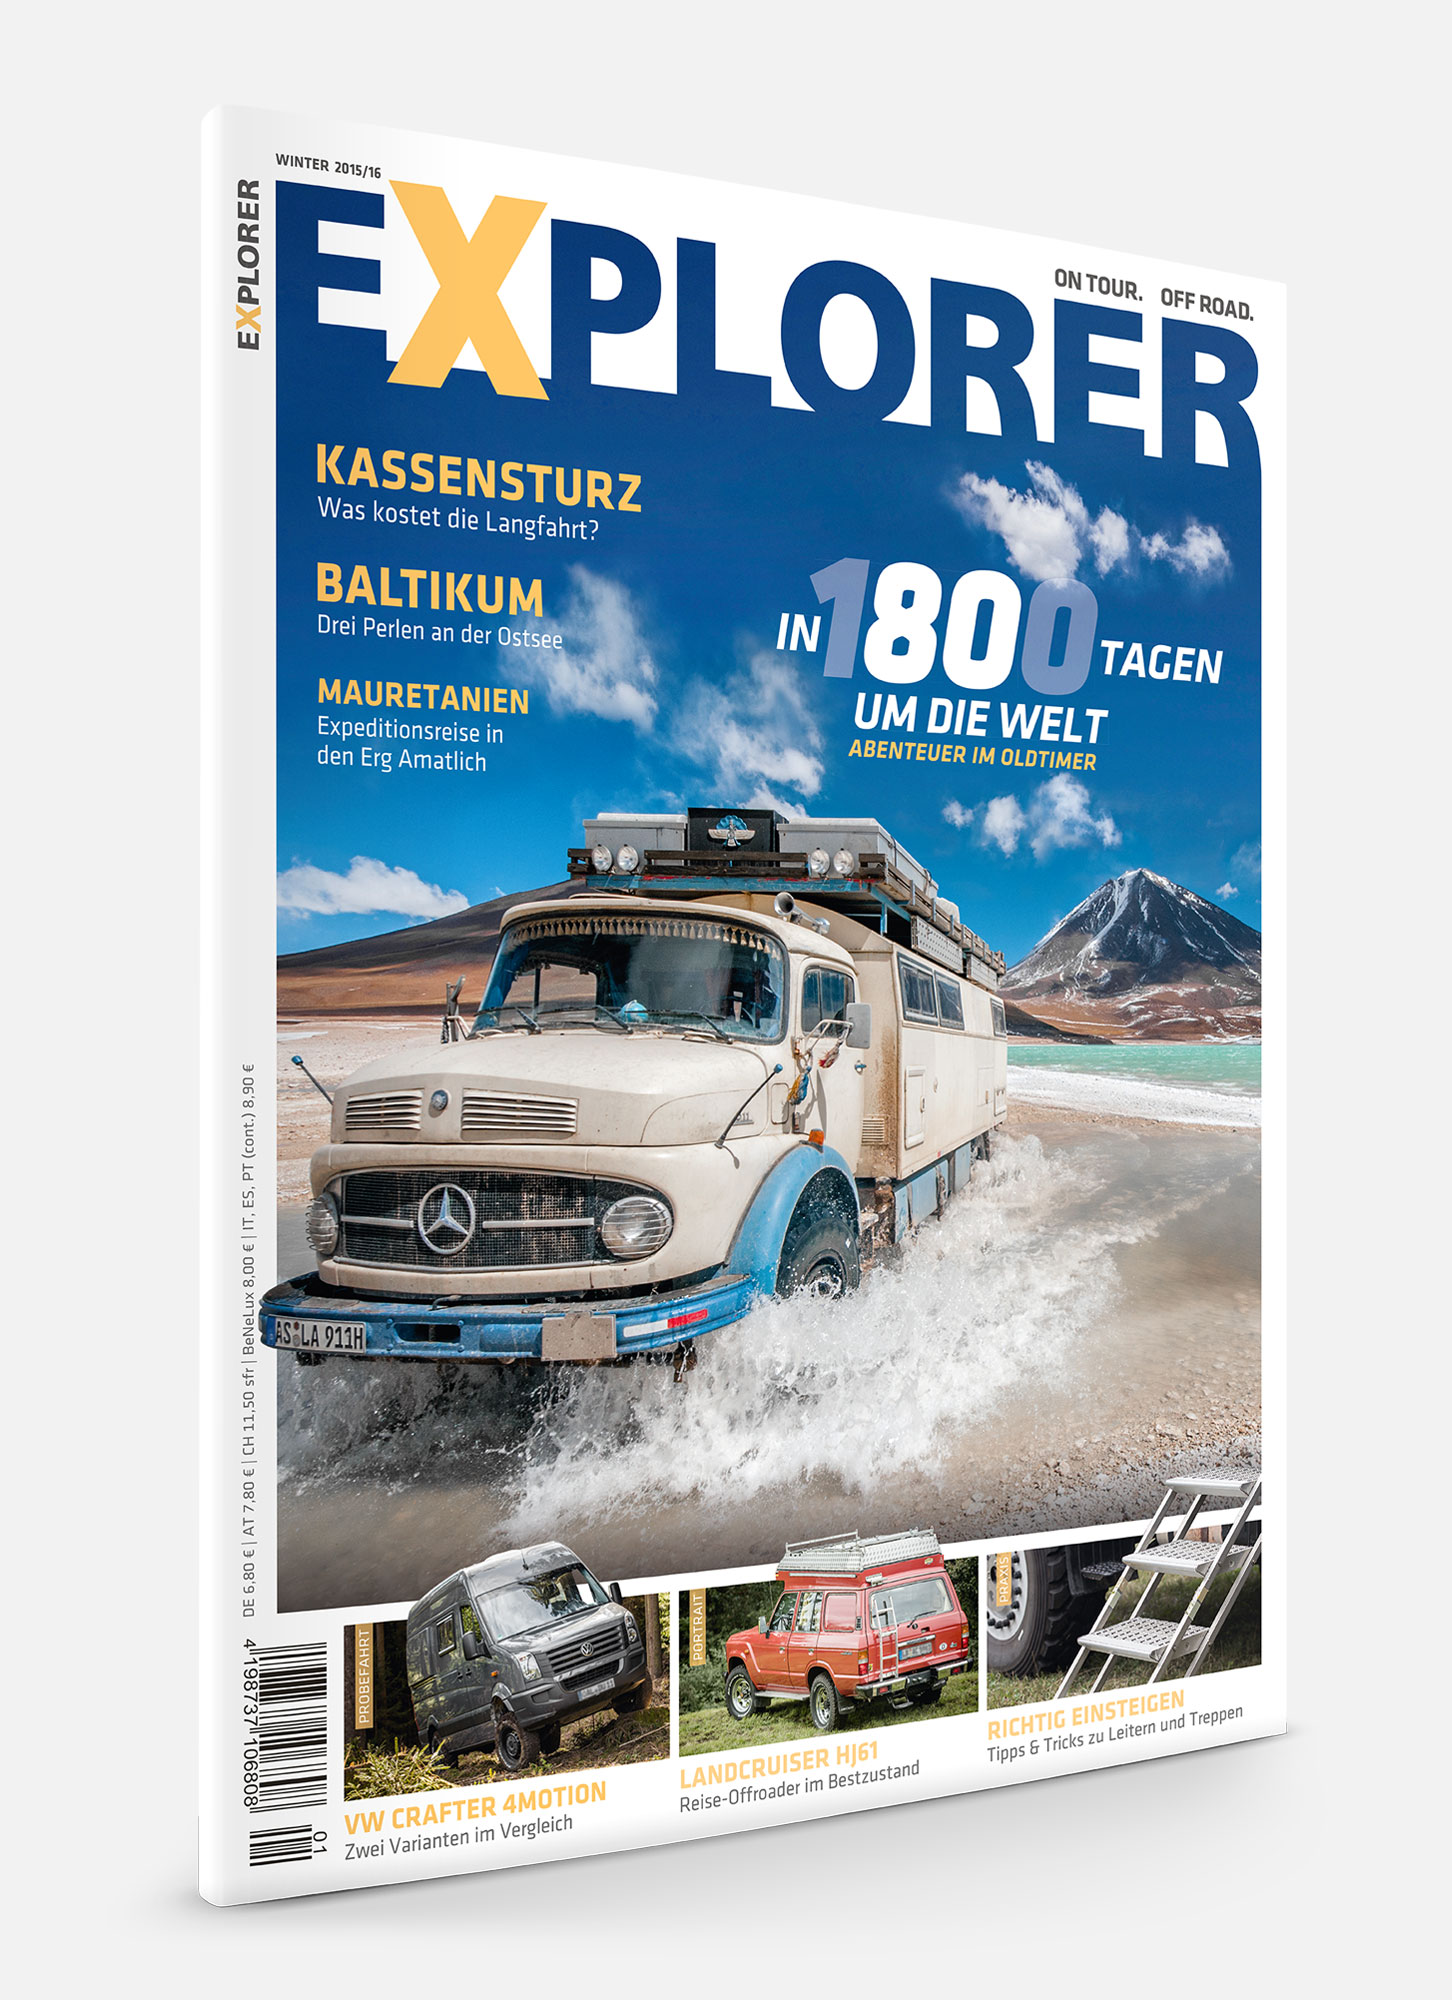 EXPLORER Ausgabe Winter 2015/2016